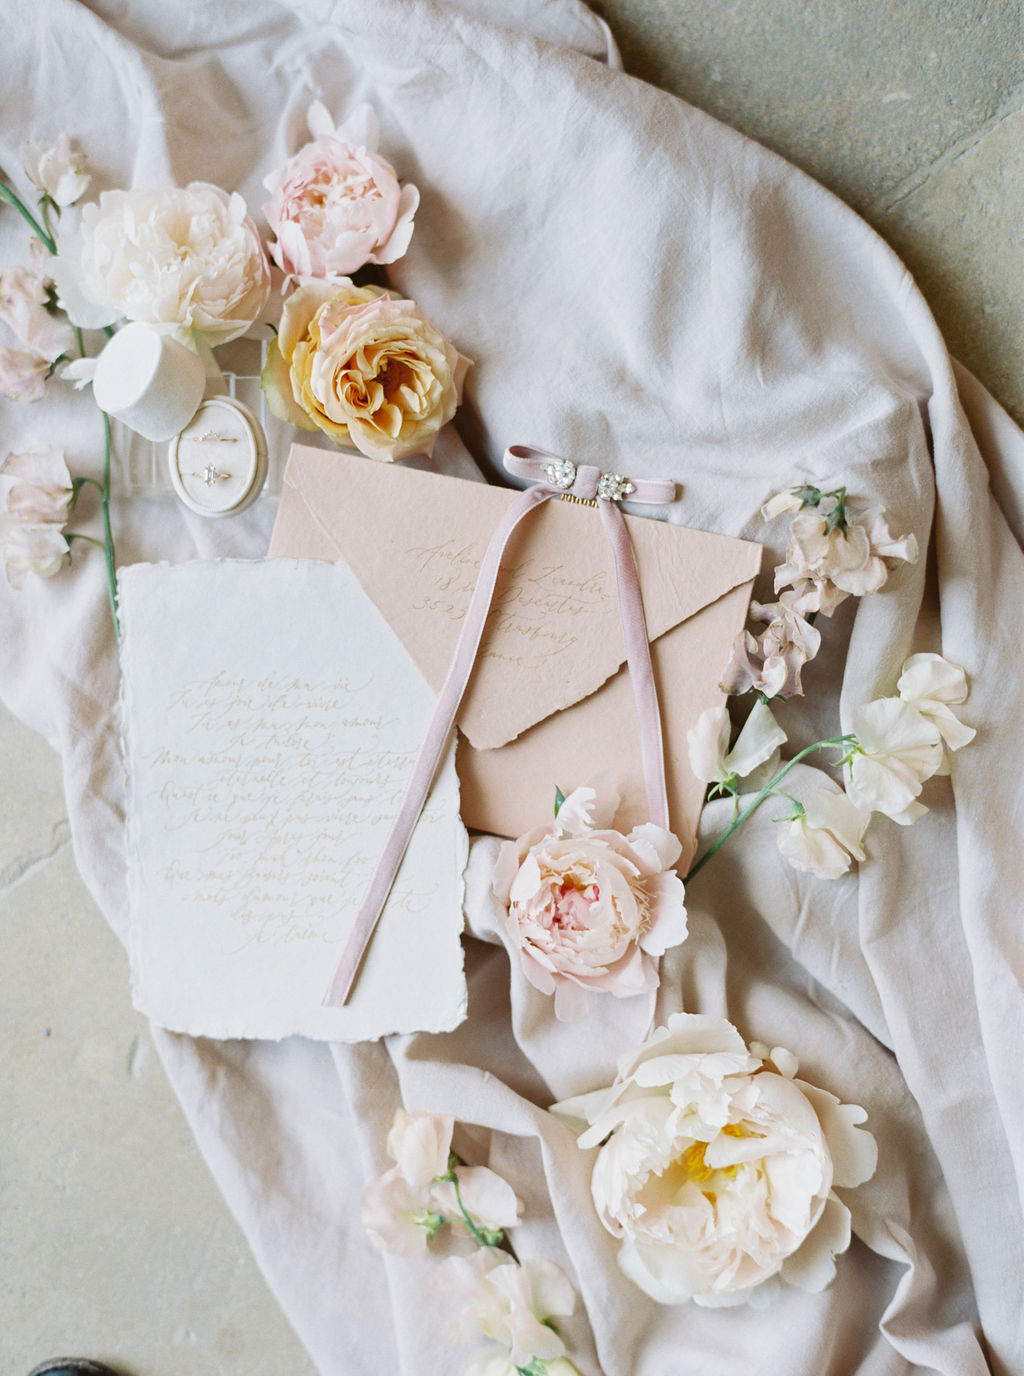 travellur_photoshoot_duchesse_de_villette_stationary_theo_berry.jpg